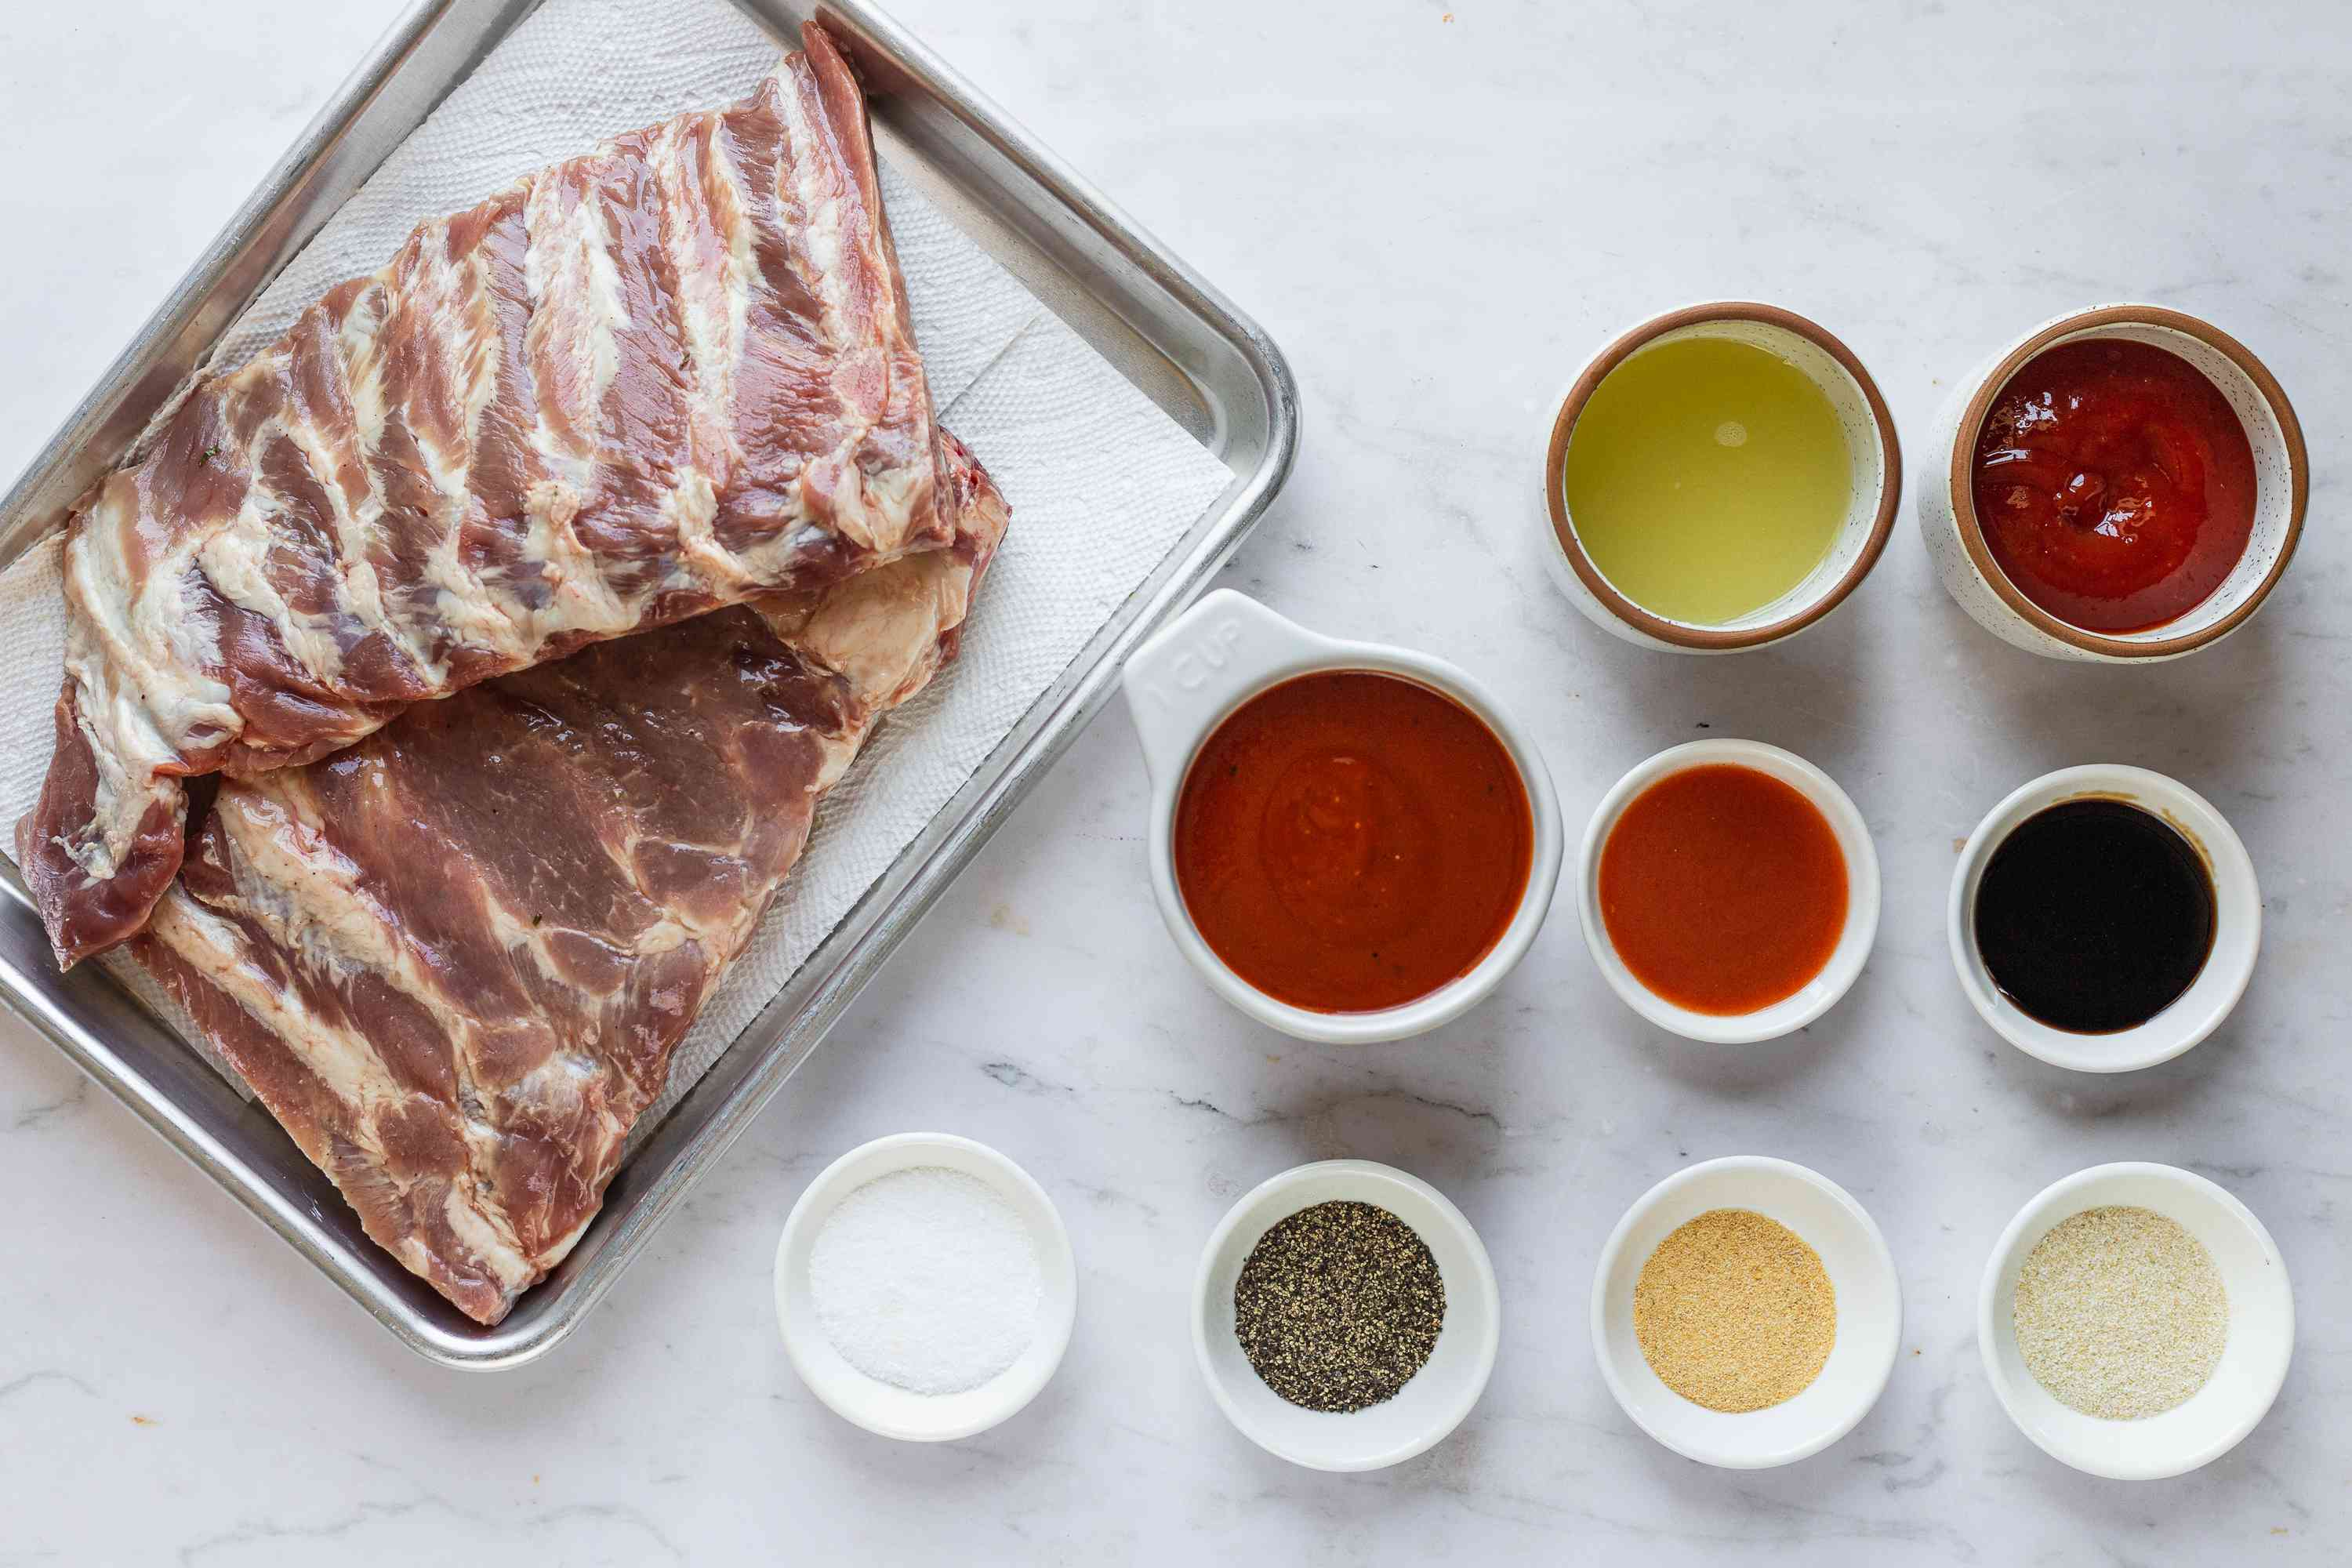 Ingredients for barbecue baked spareribs